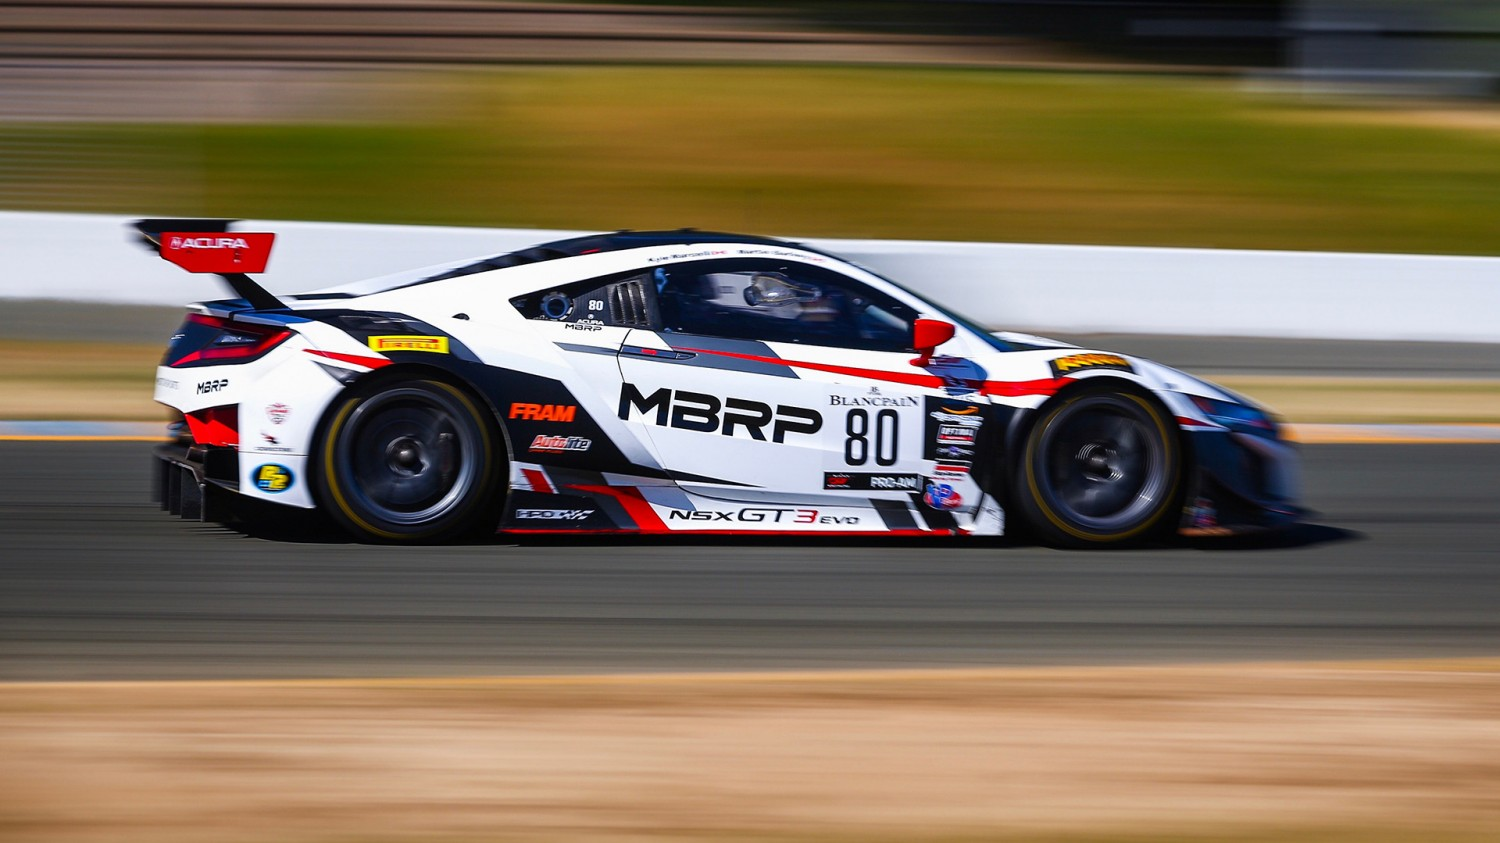 Acura/Marcelli Fastest in Blancpain GT World Challenge America Practice 2 at Sonoma Raceway